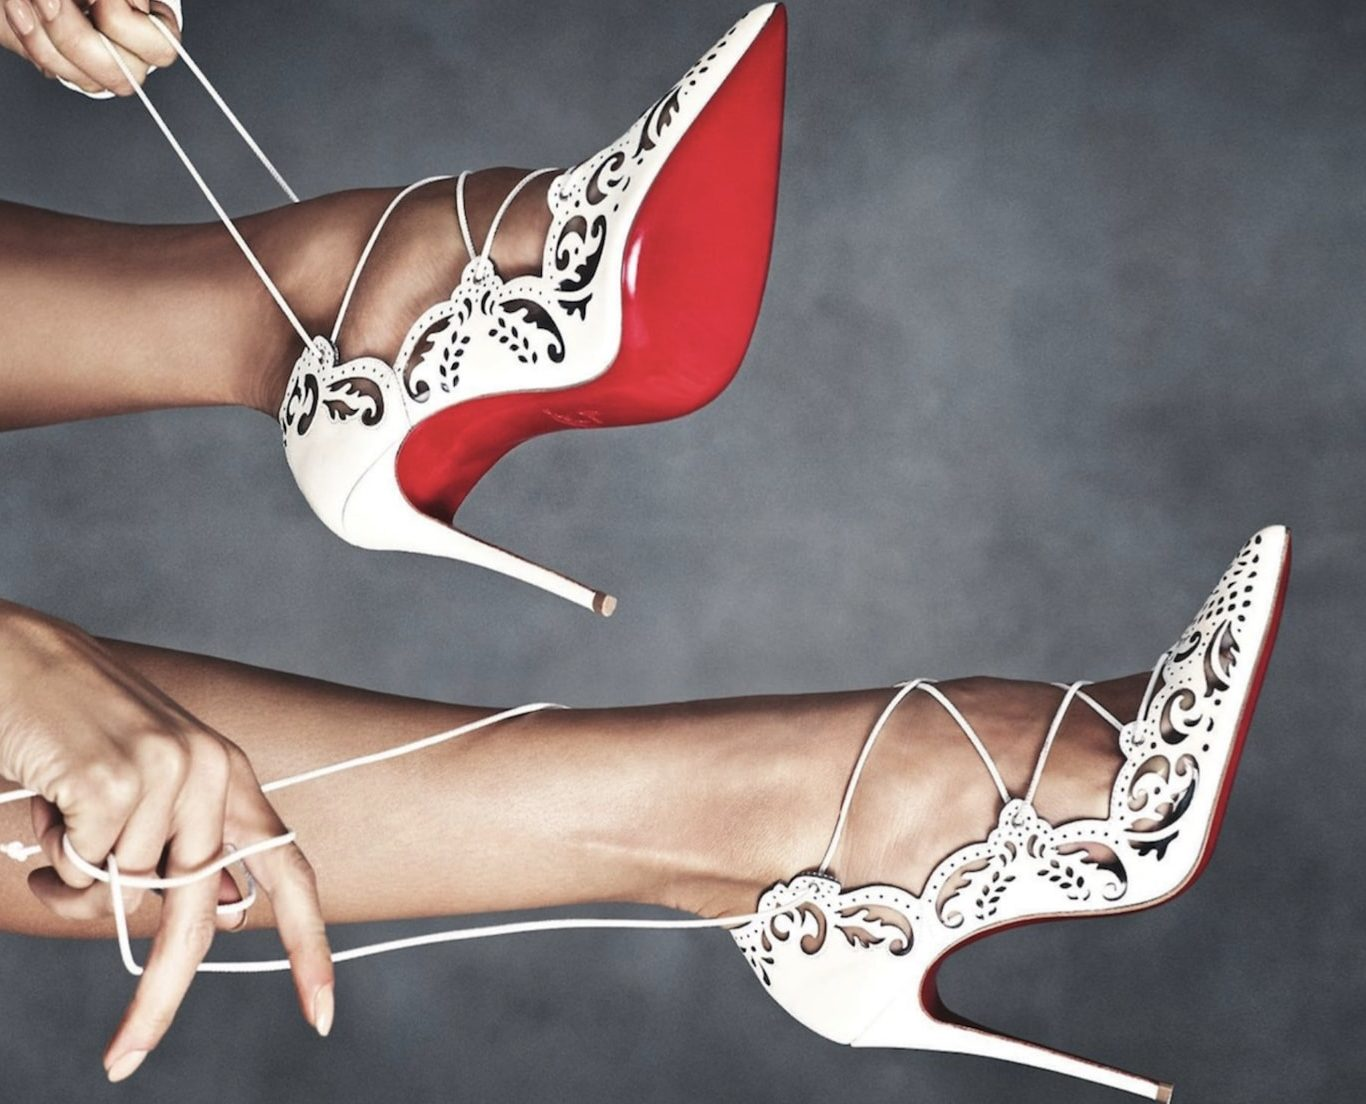 The Christian Louboutin red soles